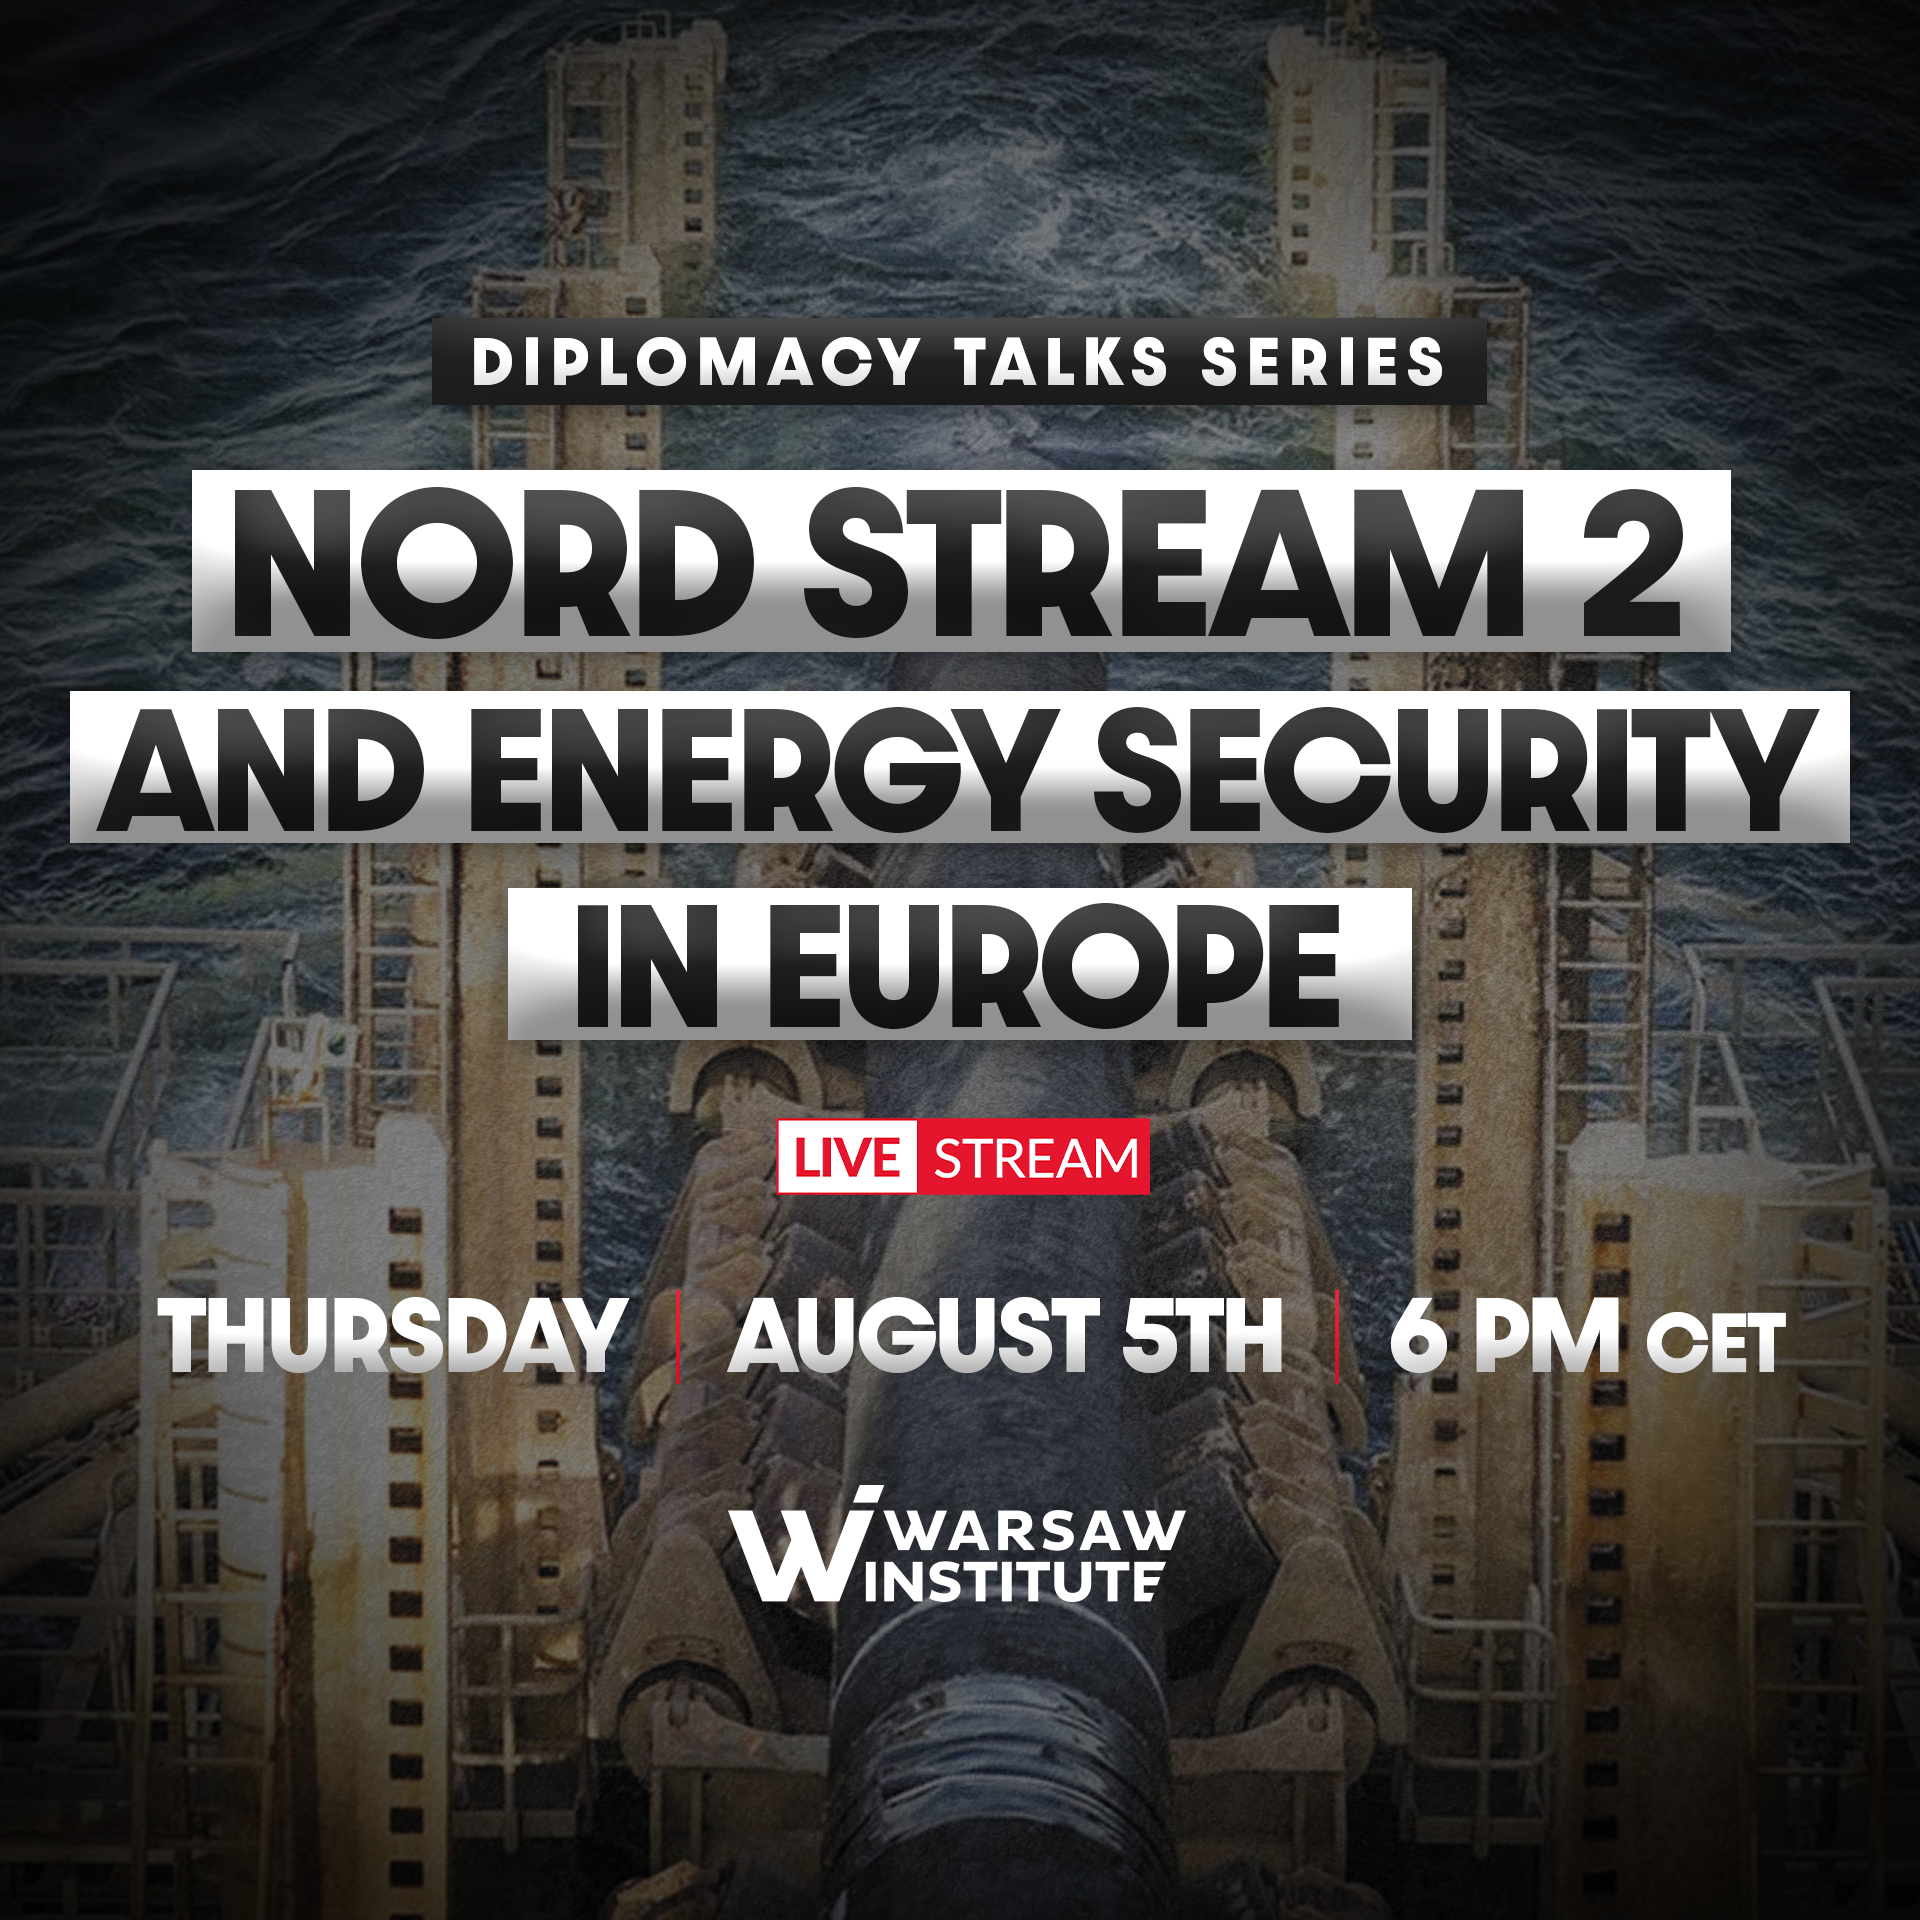 Nord Stream 2 and energy security in Europe   Diplomacy Talks Series